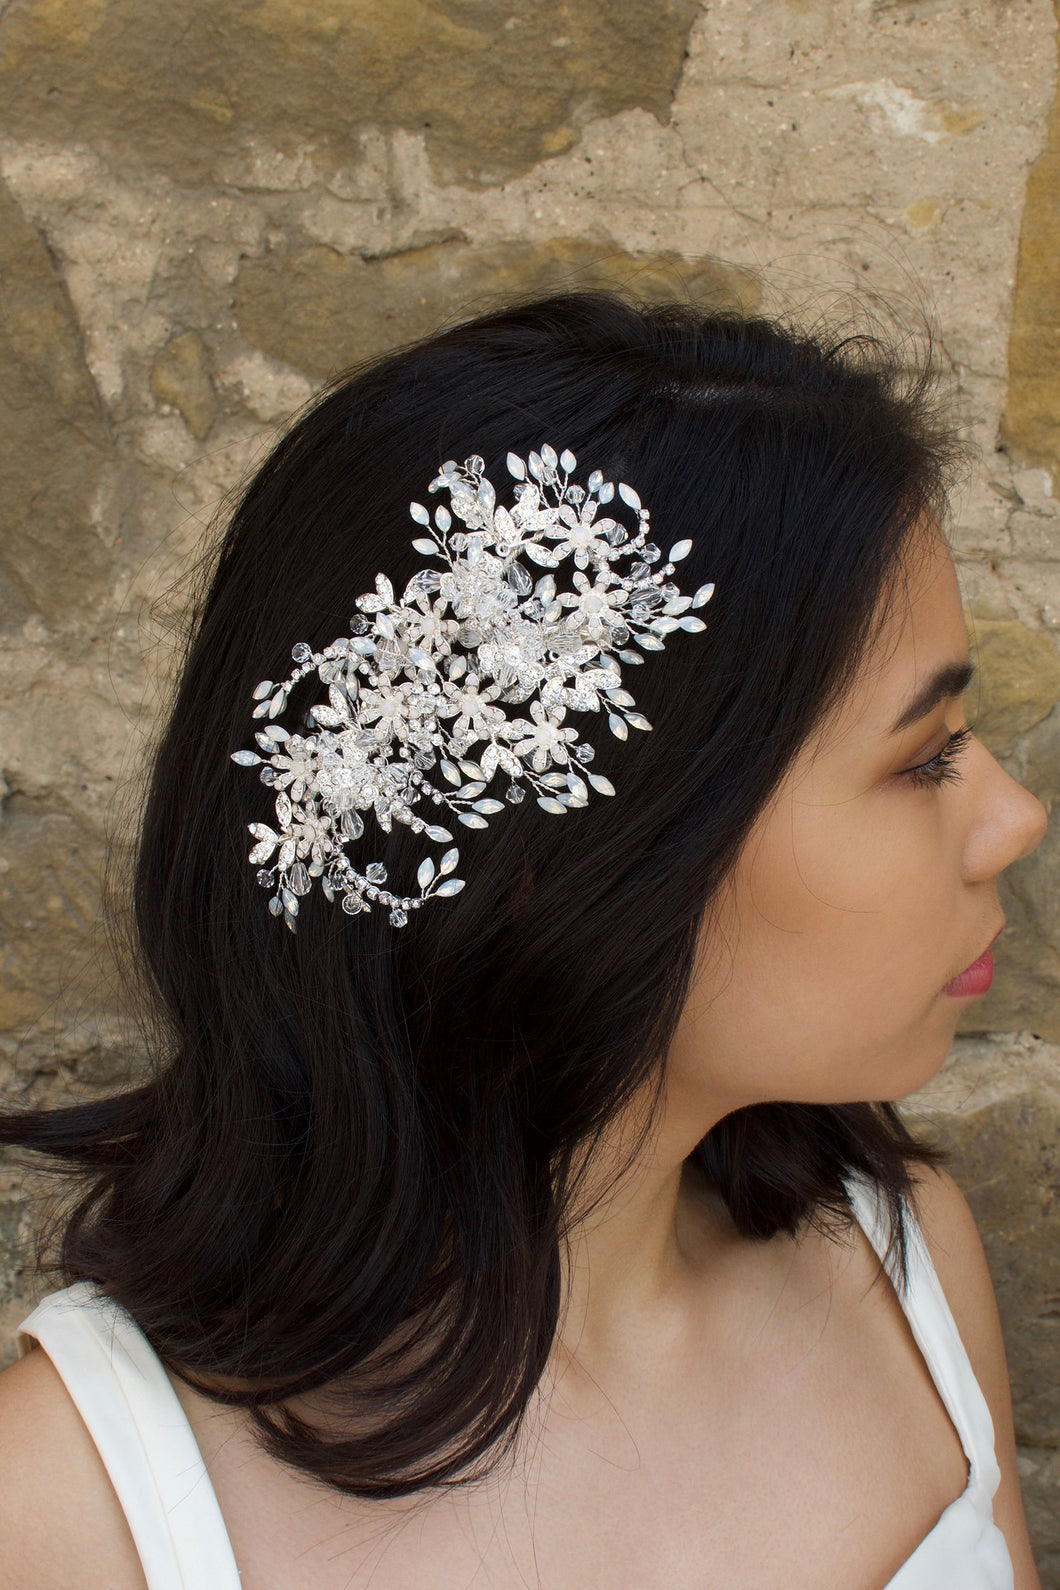 Model wears a large silver side comb on her dark hair with a stone wall background